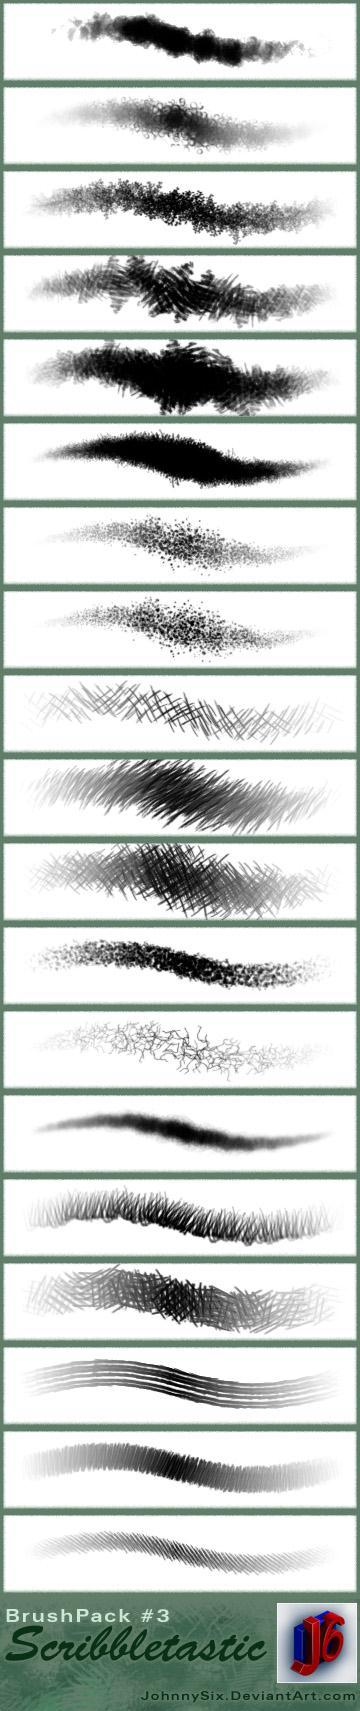 Scribble Photoshop Brushes